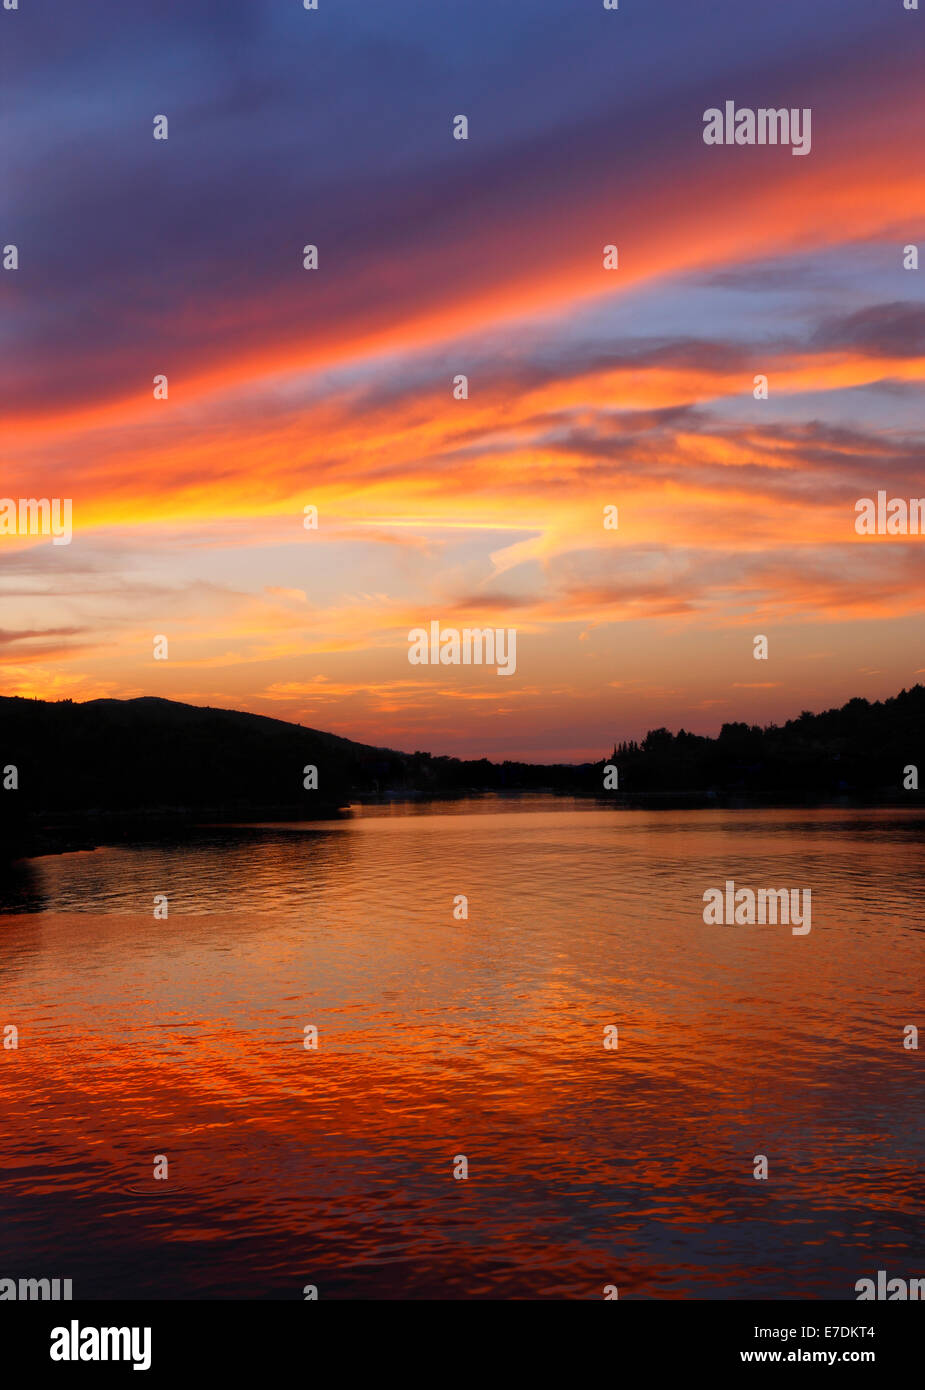 Sunset at Dugi otok, Croatia - Stock Image